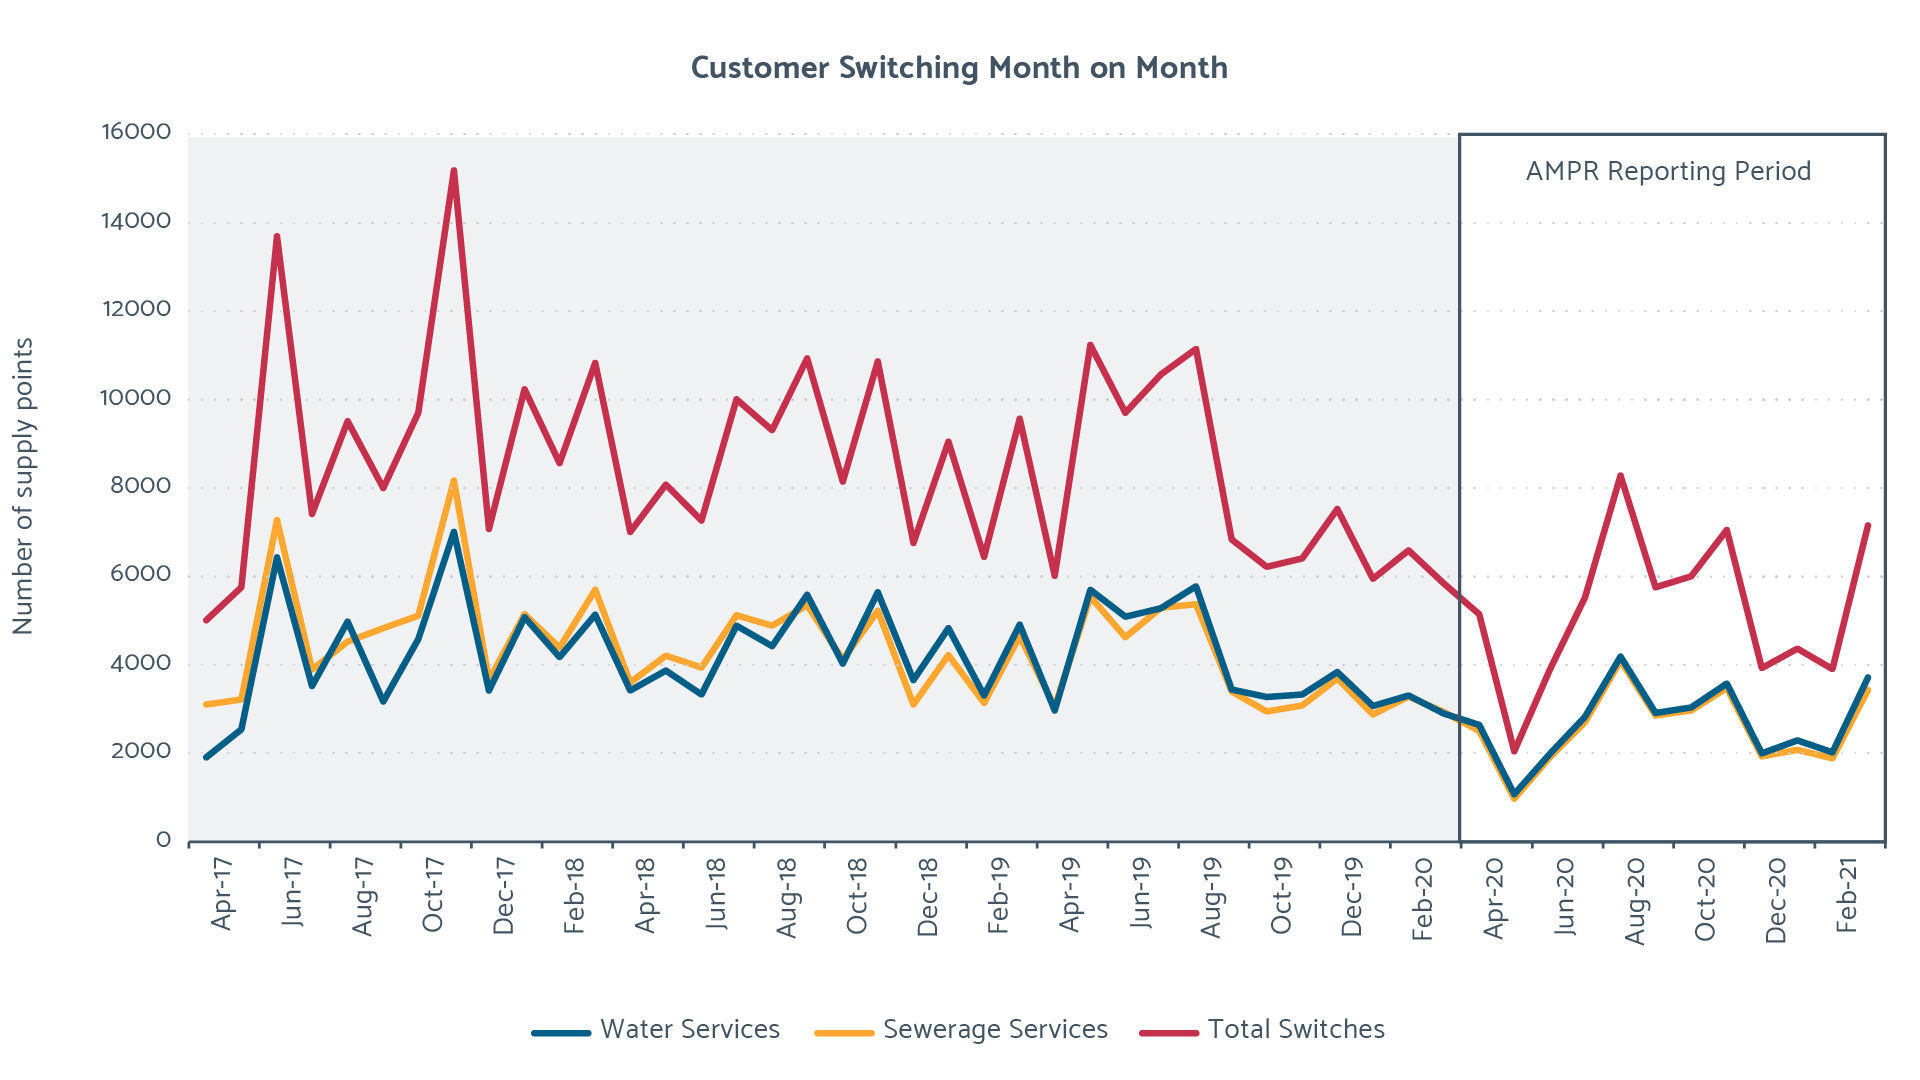 Customer switching month on month